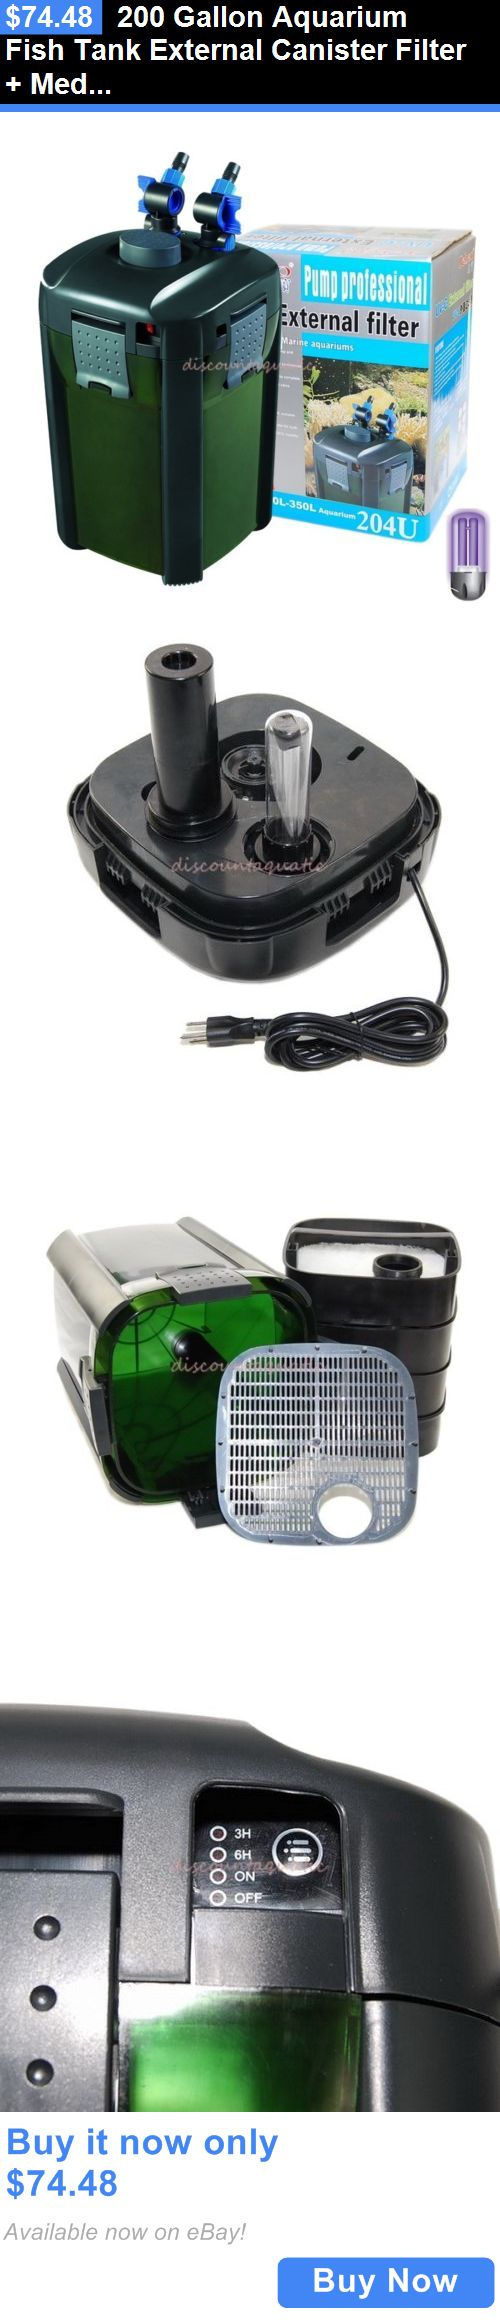 Boyu aquarium fish tank external filter canister - Animals Fish And Aquariums 200 Gallon Aquarium Fish Tank External Canister Filter Media Kits Self Priming Buy It Now Only 74 48 Pinterest Aquarium